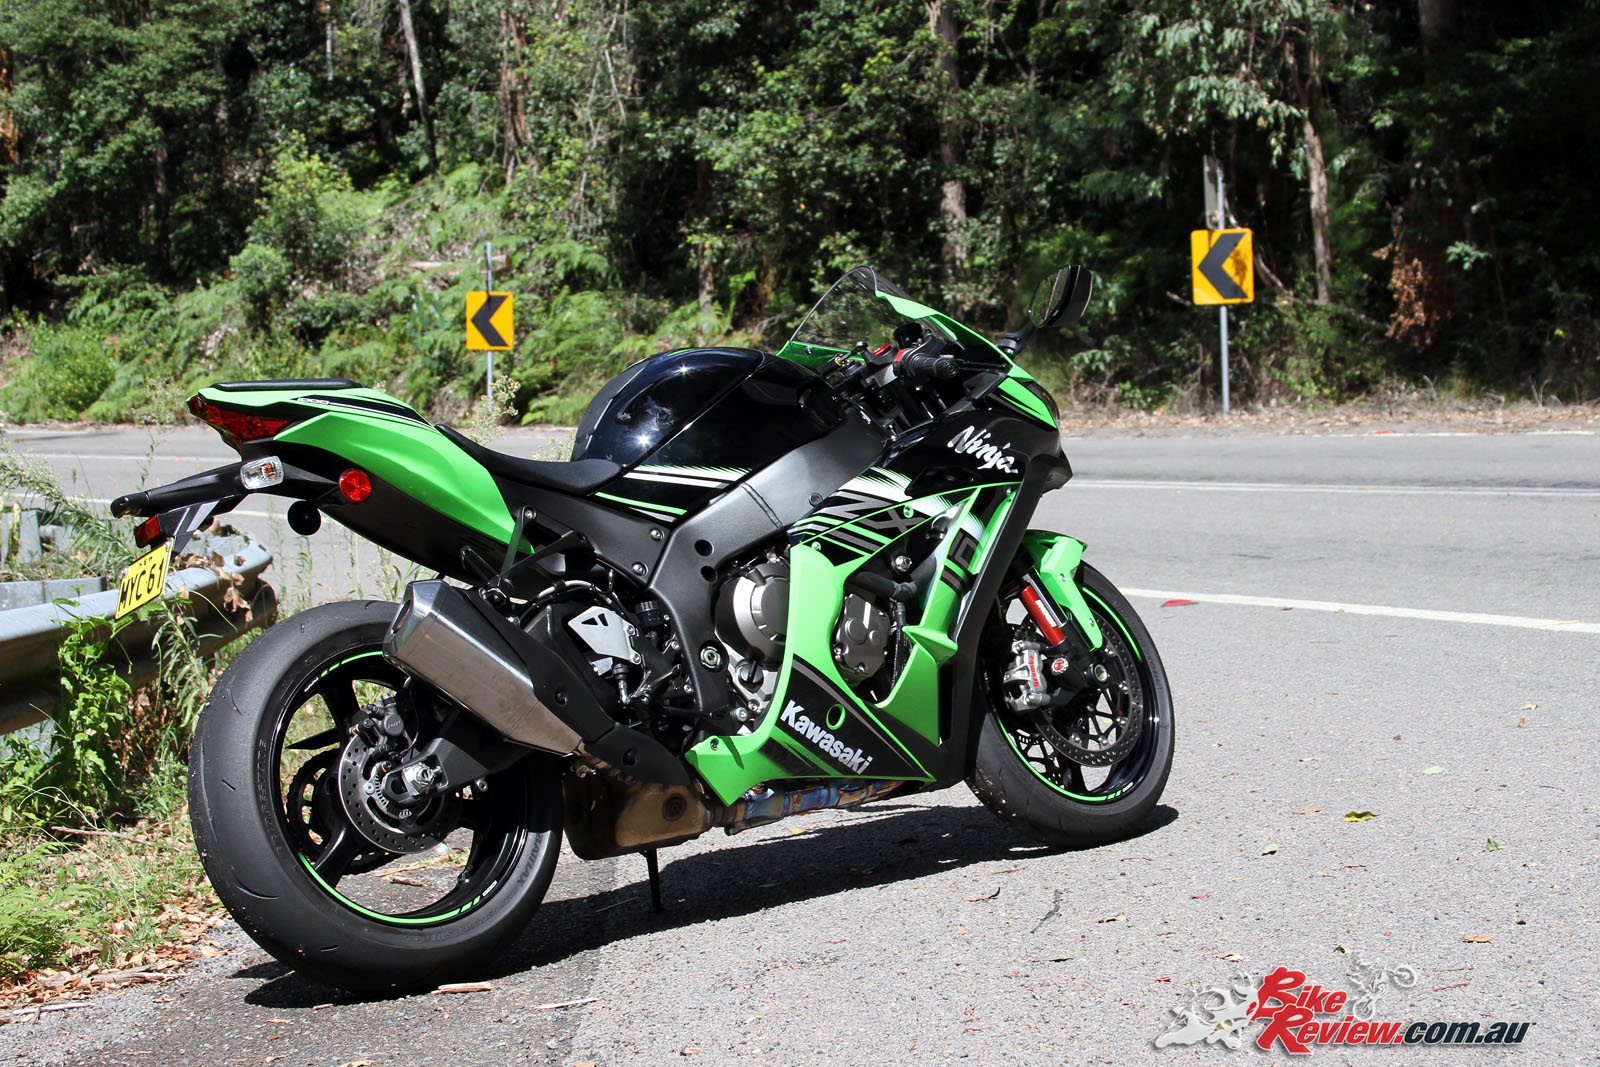 review 2016 kawasaki ninja zx 10r road test bike review. Black Bedroom Furniture Sets. Home Design Ideas